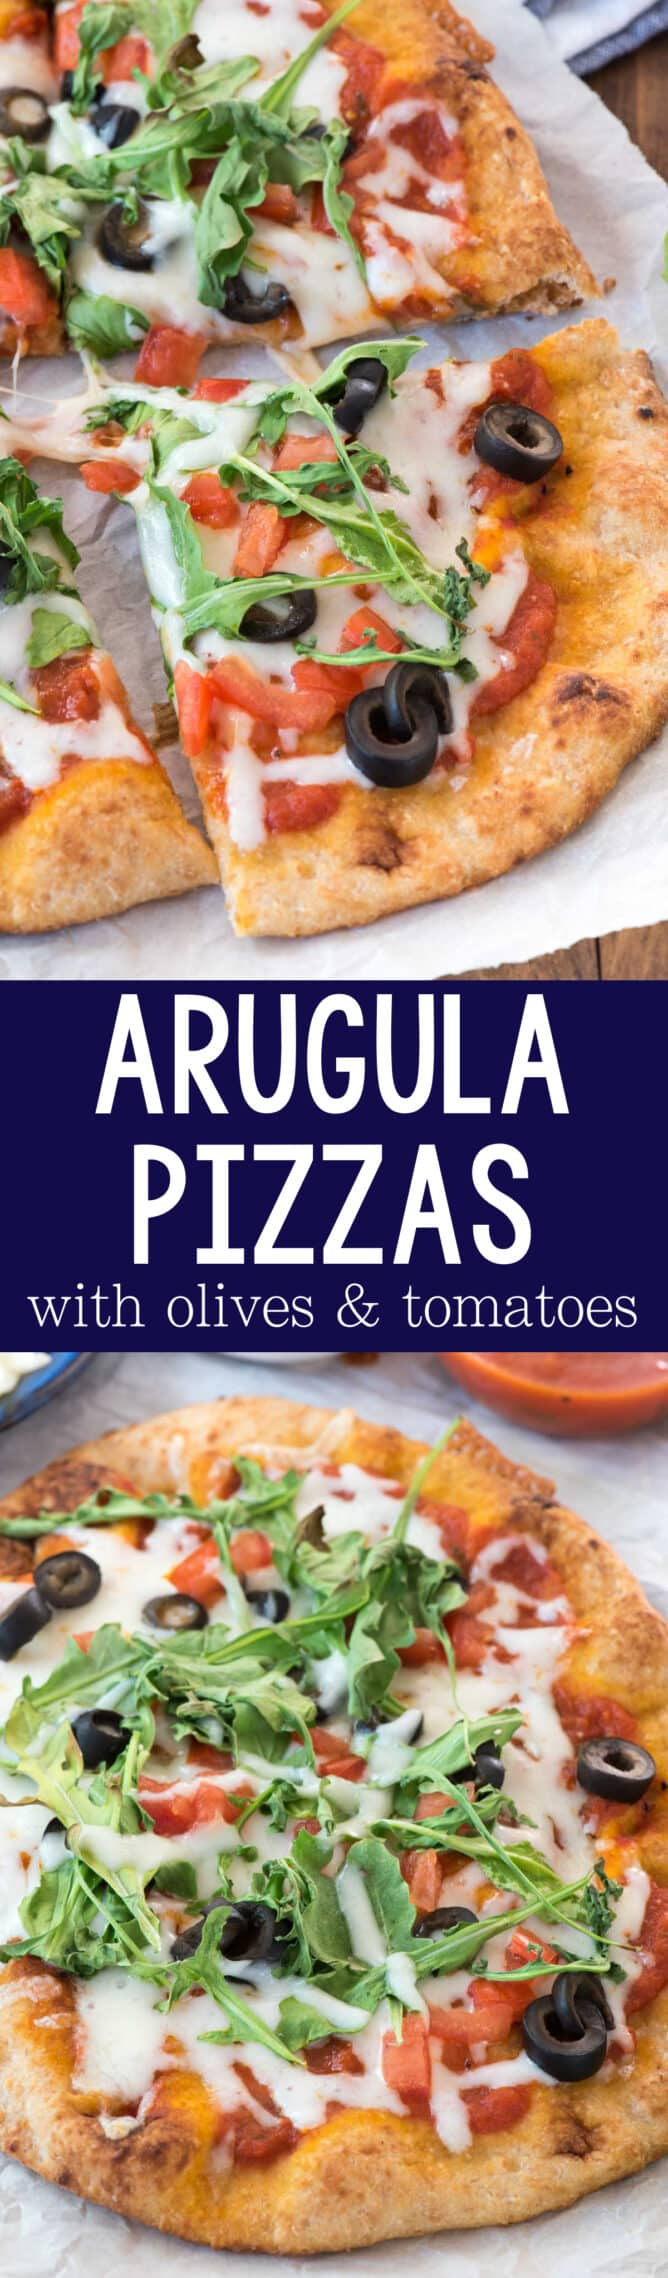 Arugula Pizzas collage photo of sliced and whole pizza